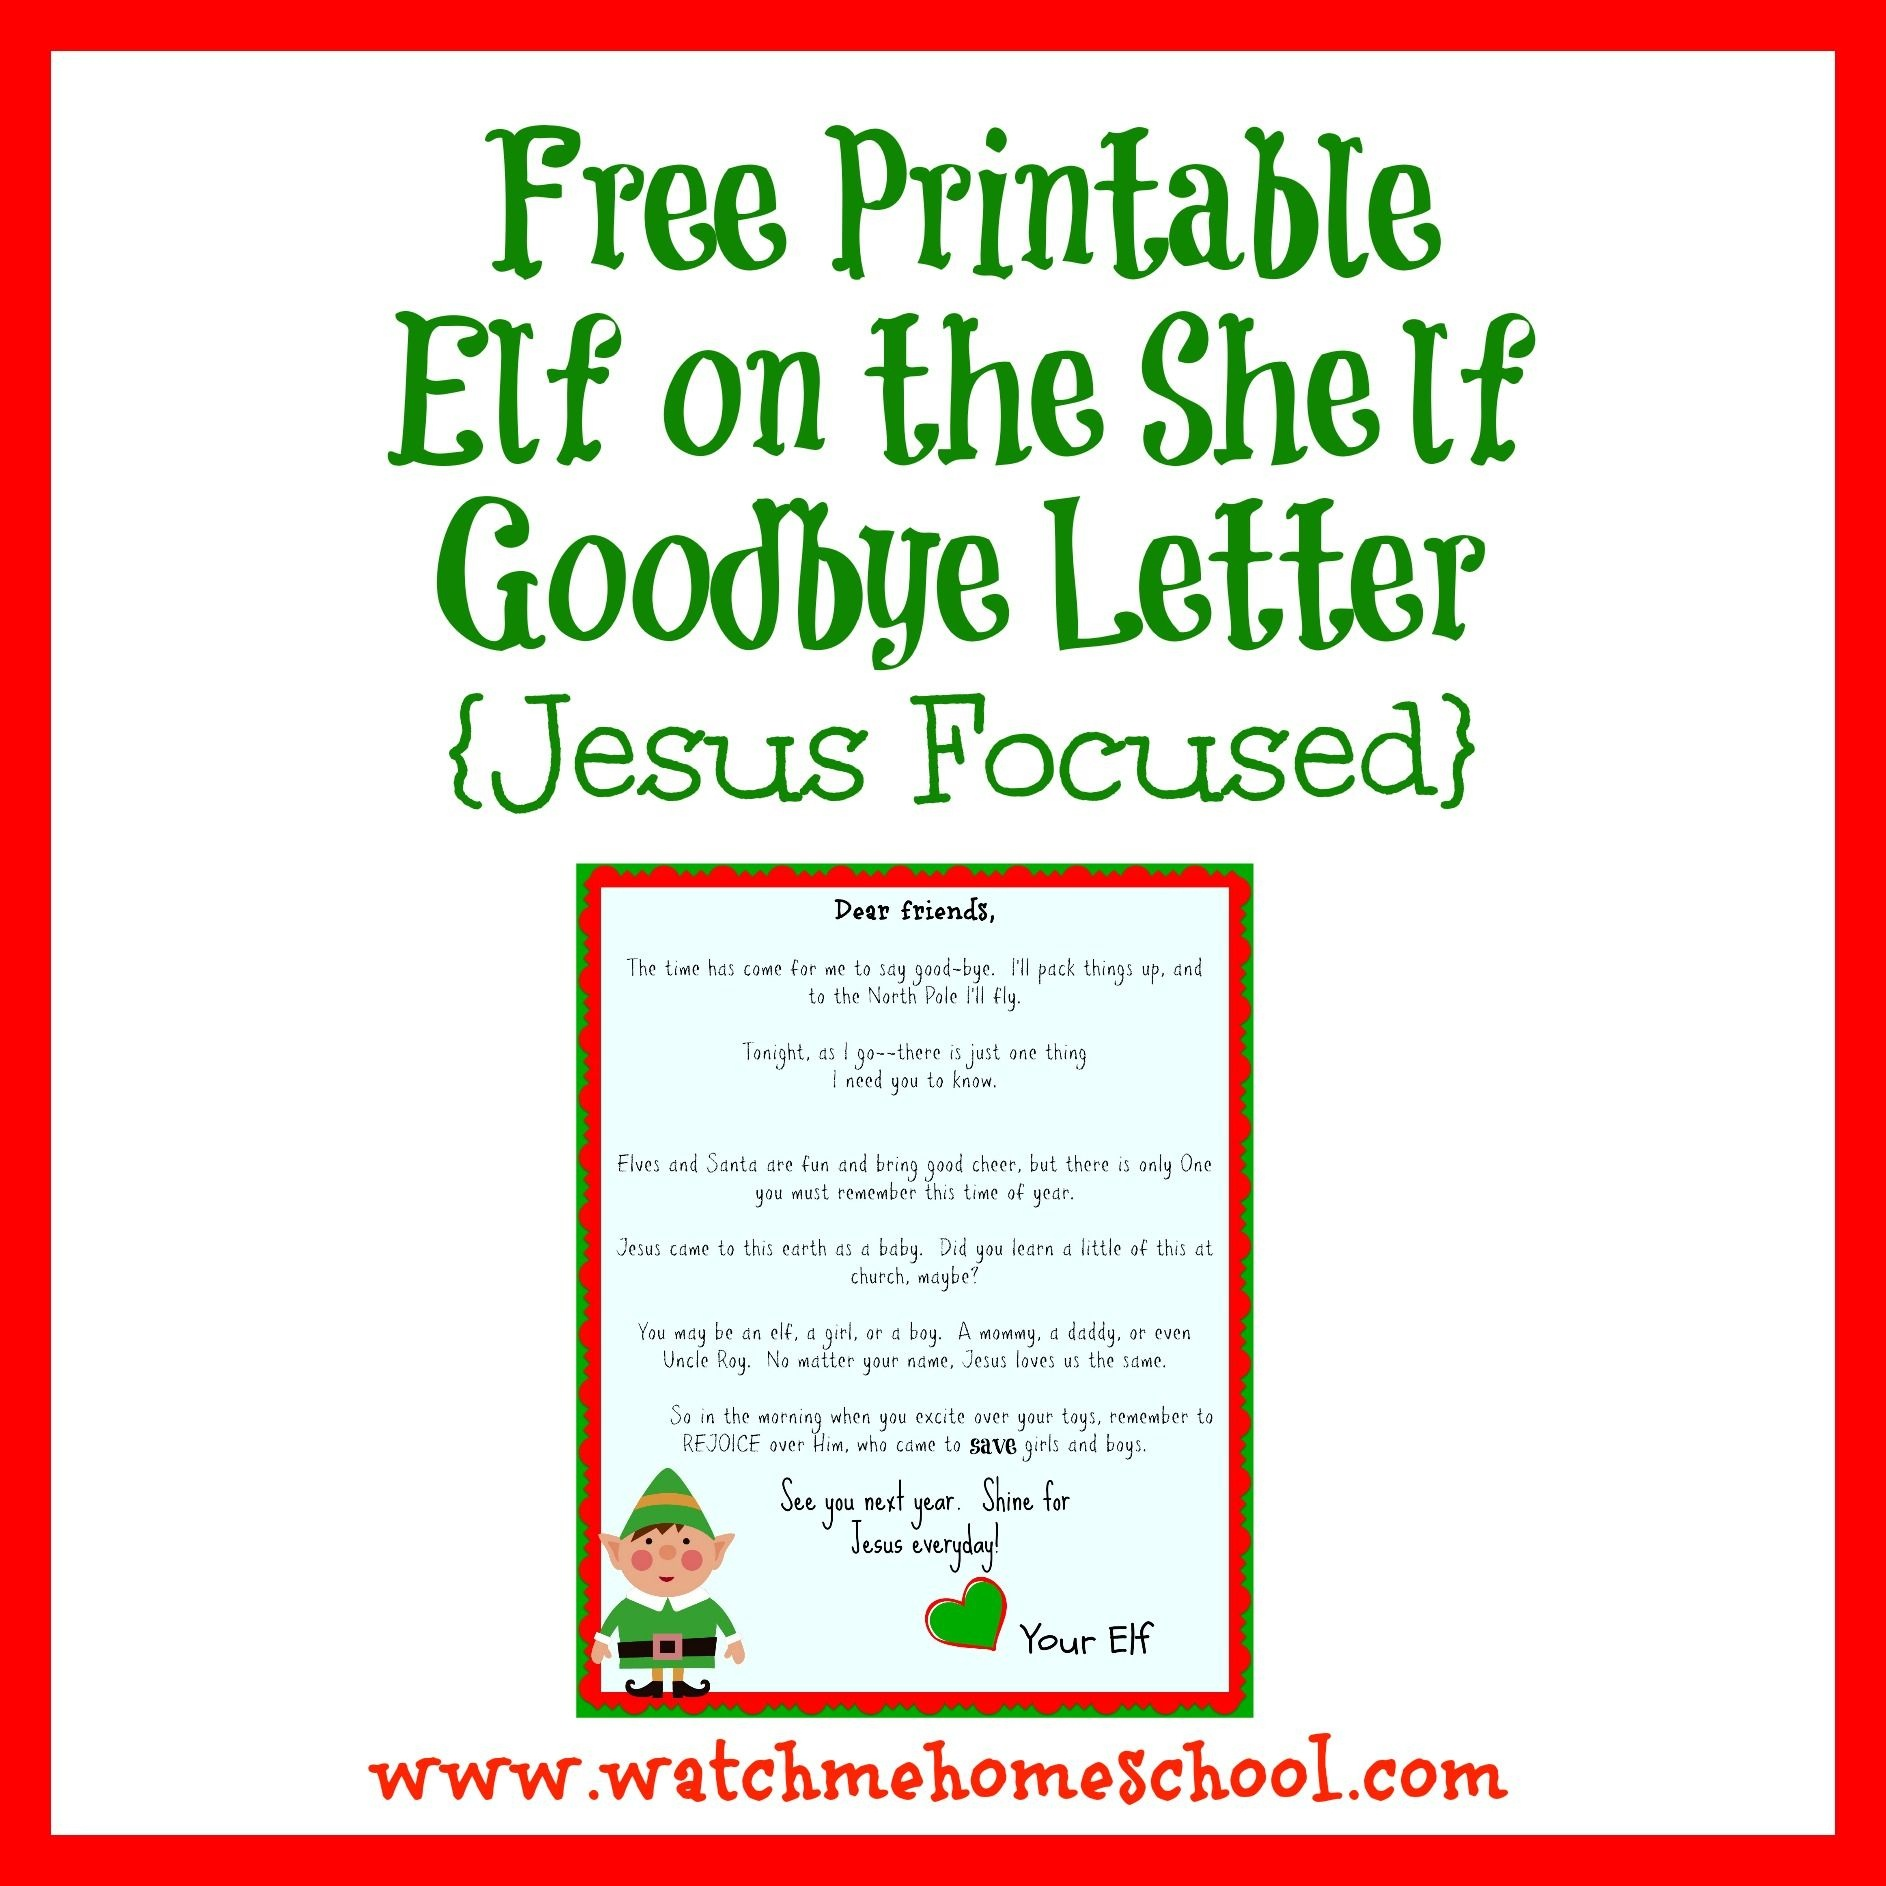 Elf On The Shelf Farewell Letter Printable | Elf On The Shelf | Elf - Elf On The Shelf Goodbye Letter Free Printable